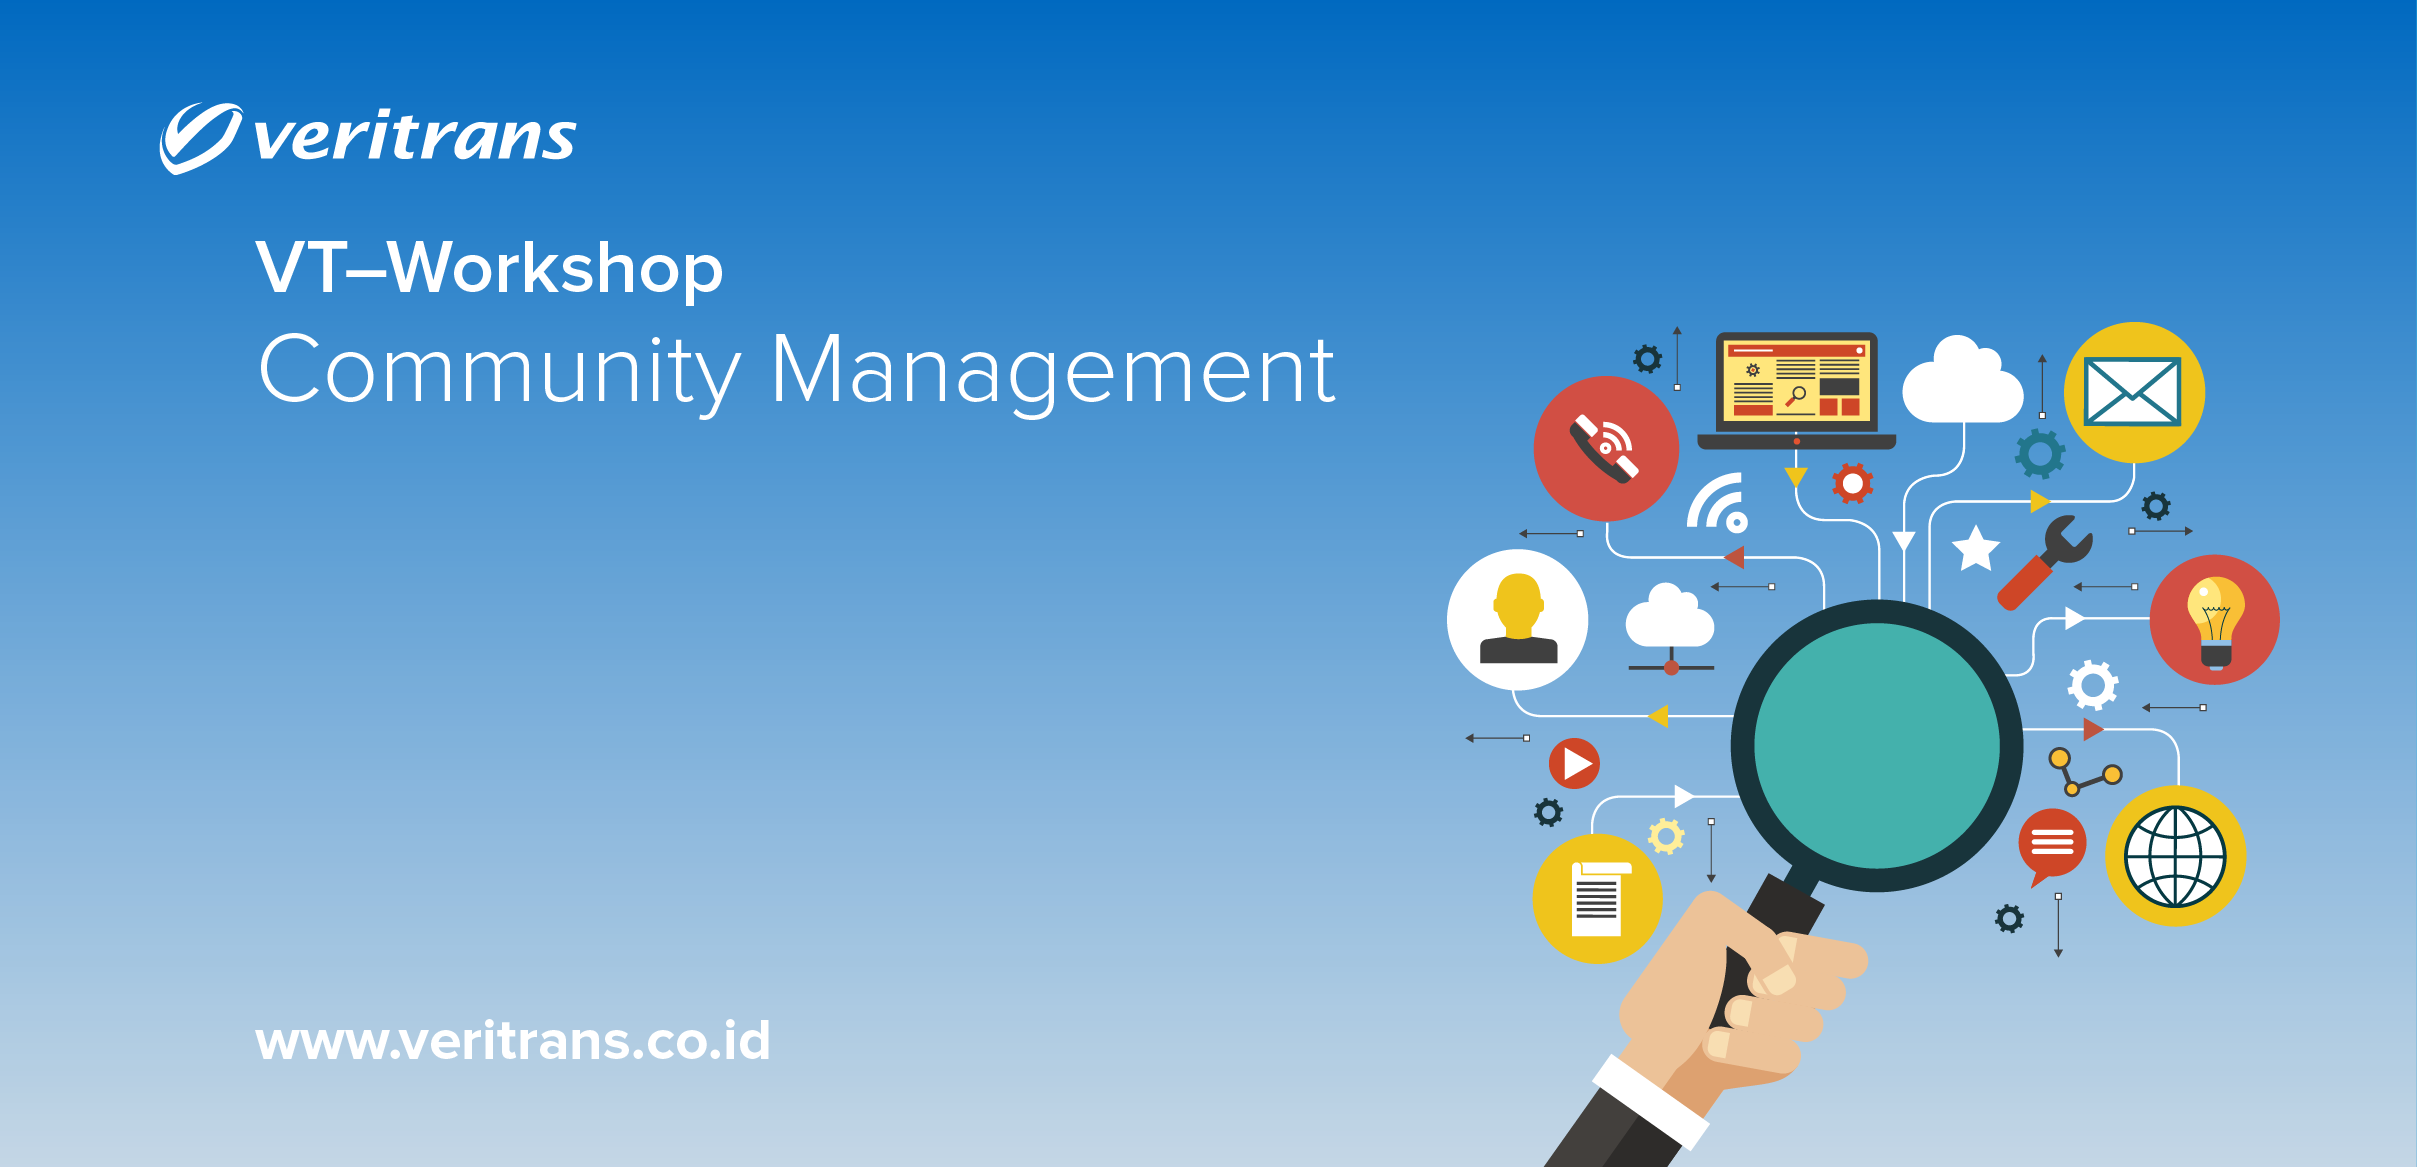 VT-Workshop: Community Management